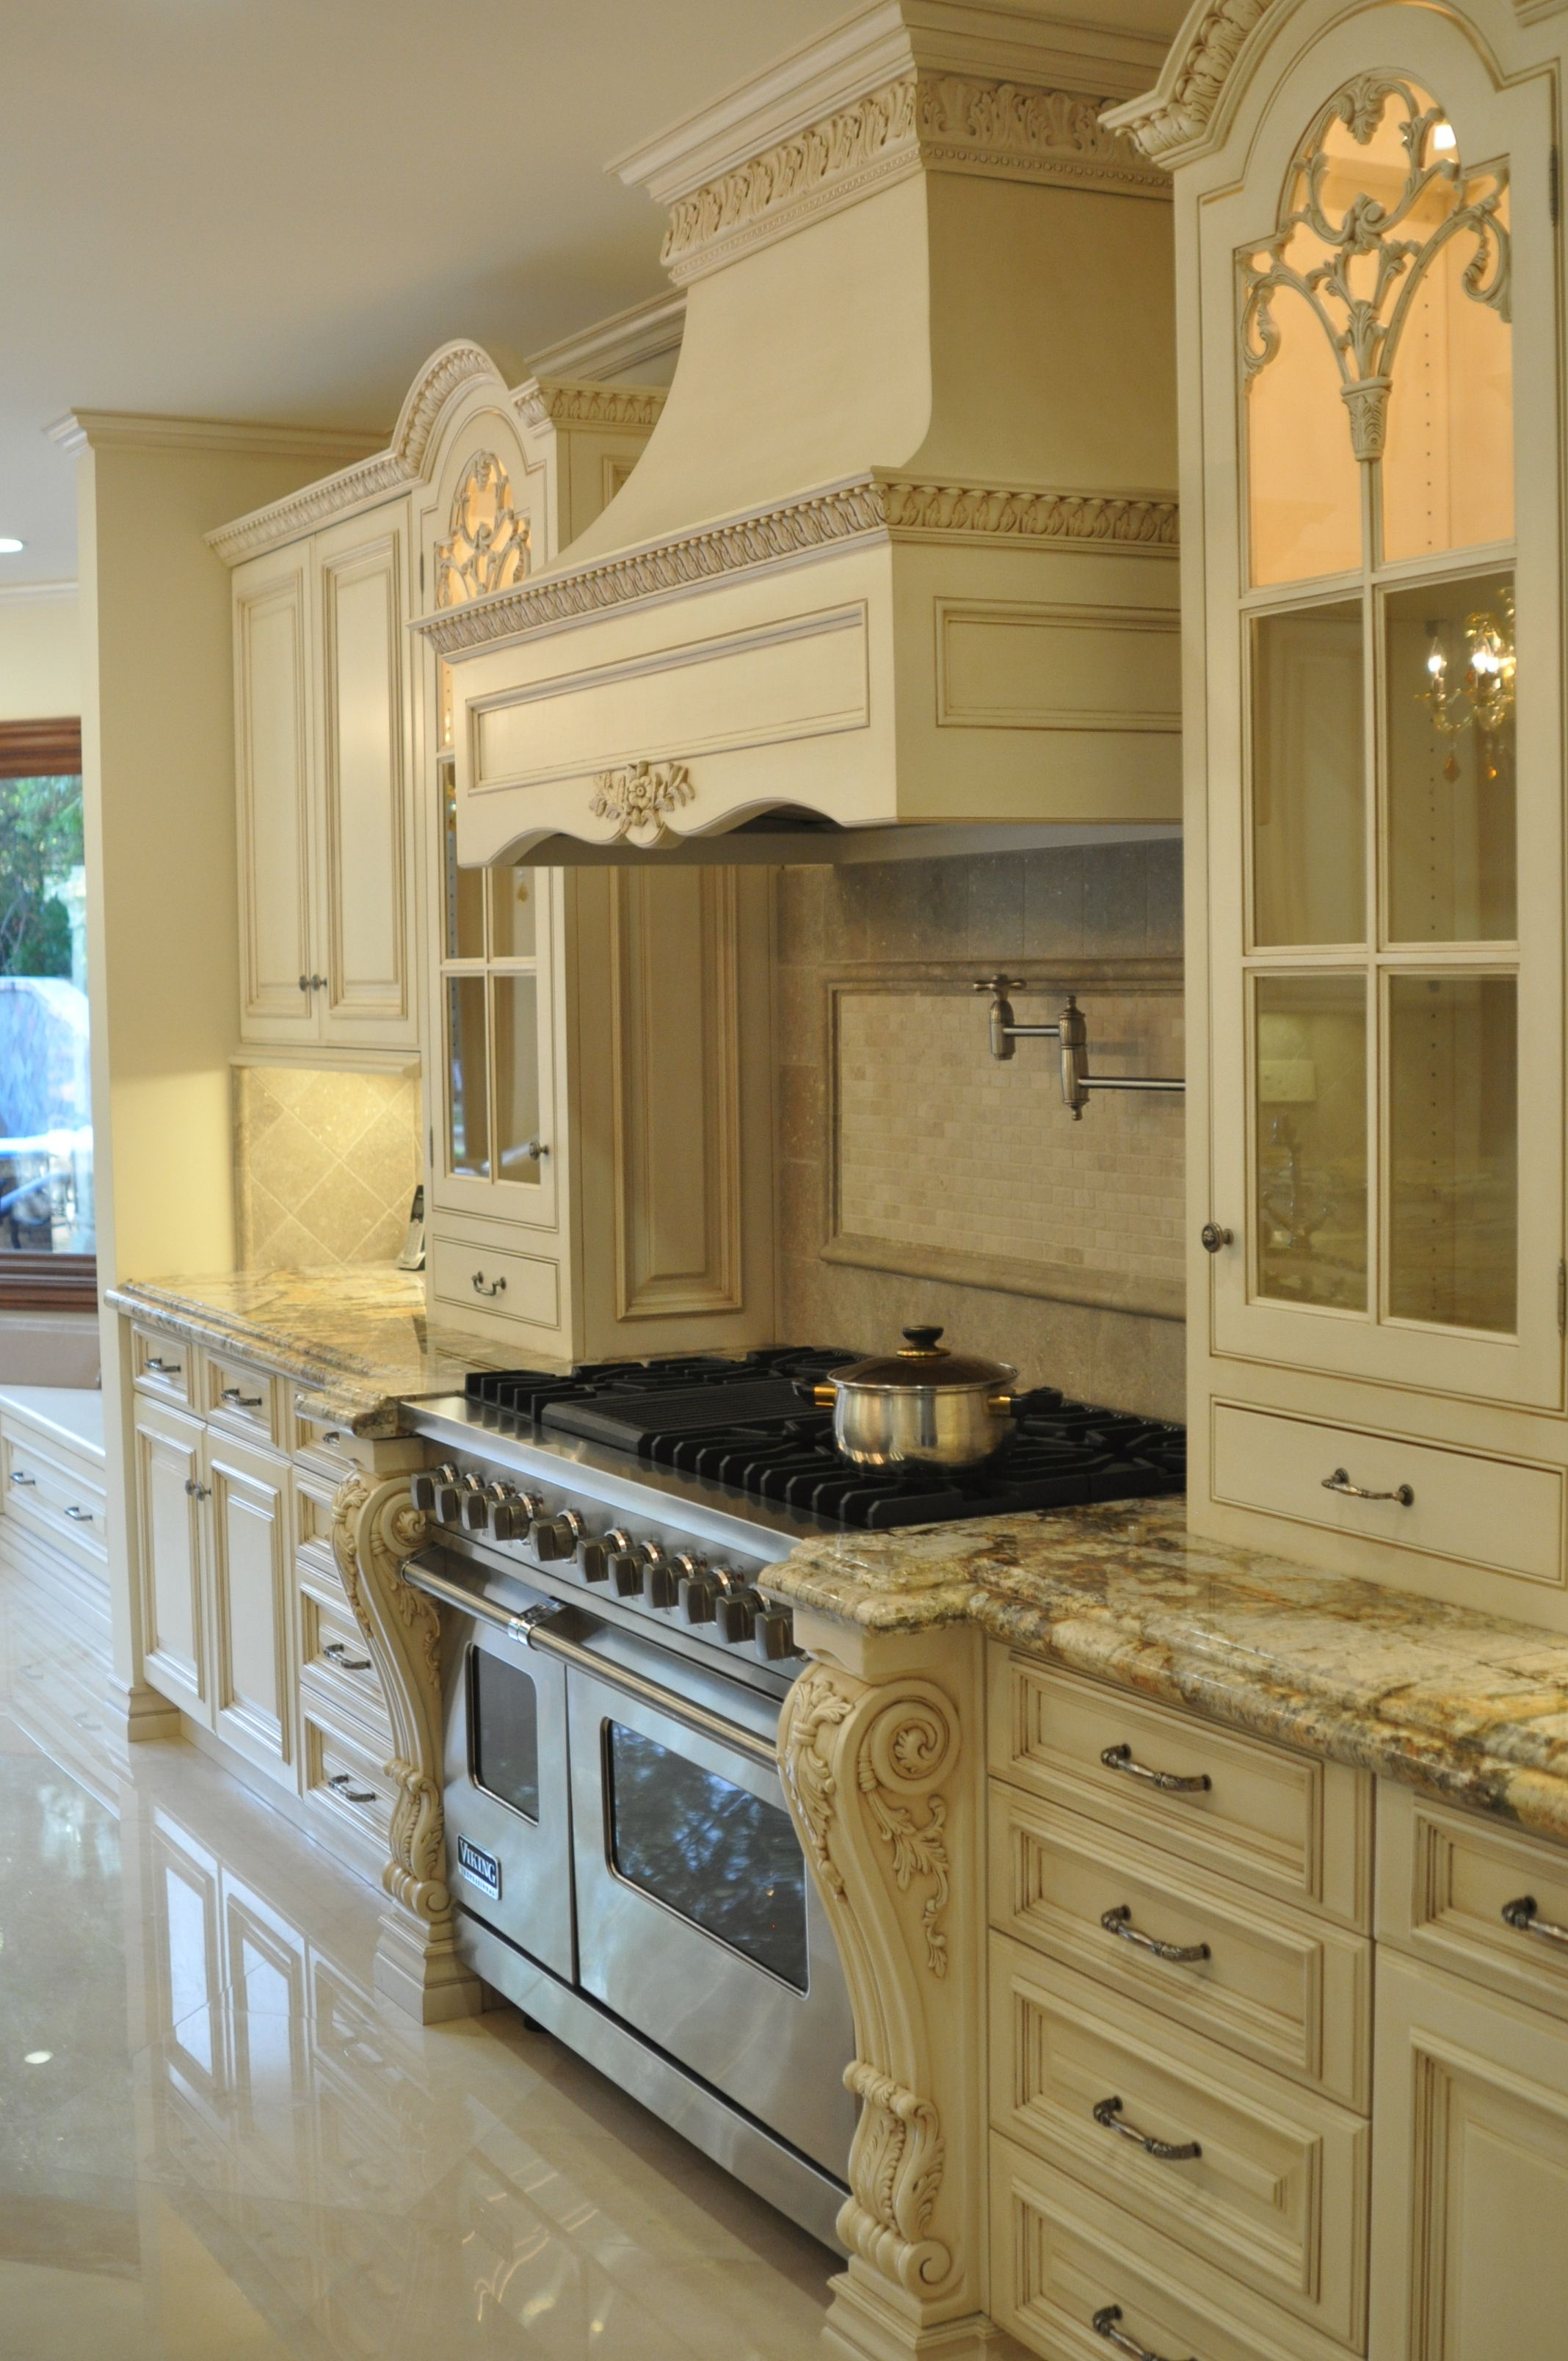 glazed cabinets love this kitchen country kitchen designs country style kitchen french on kitchen interior french country id=92268